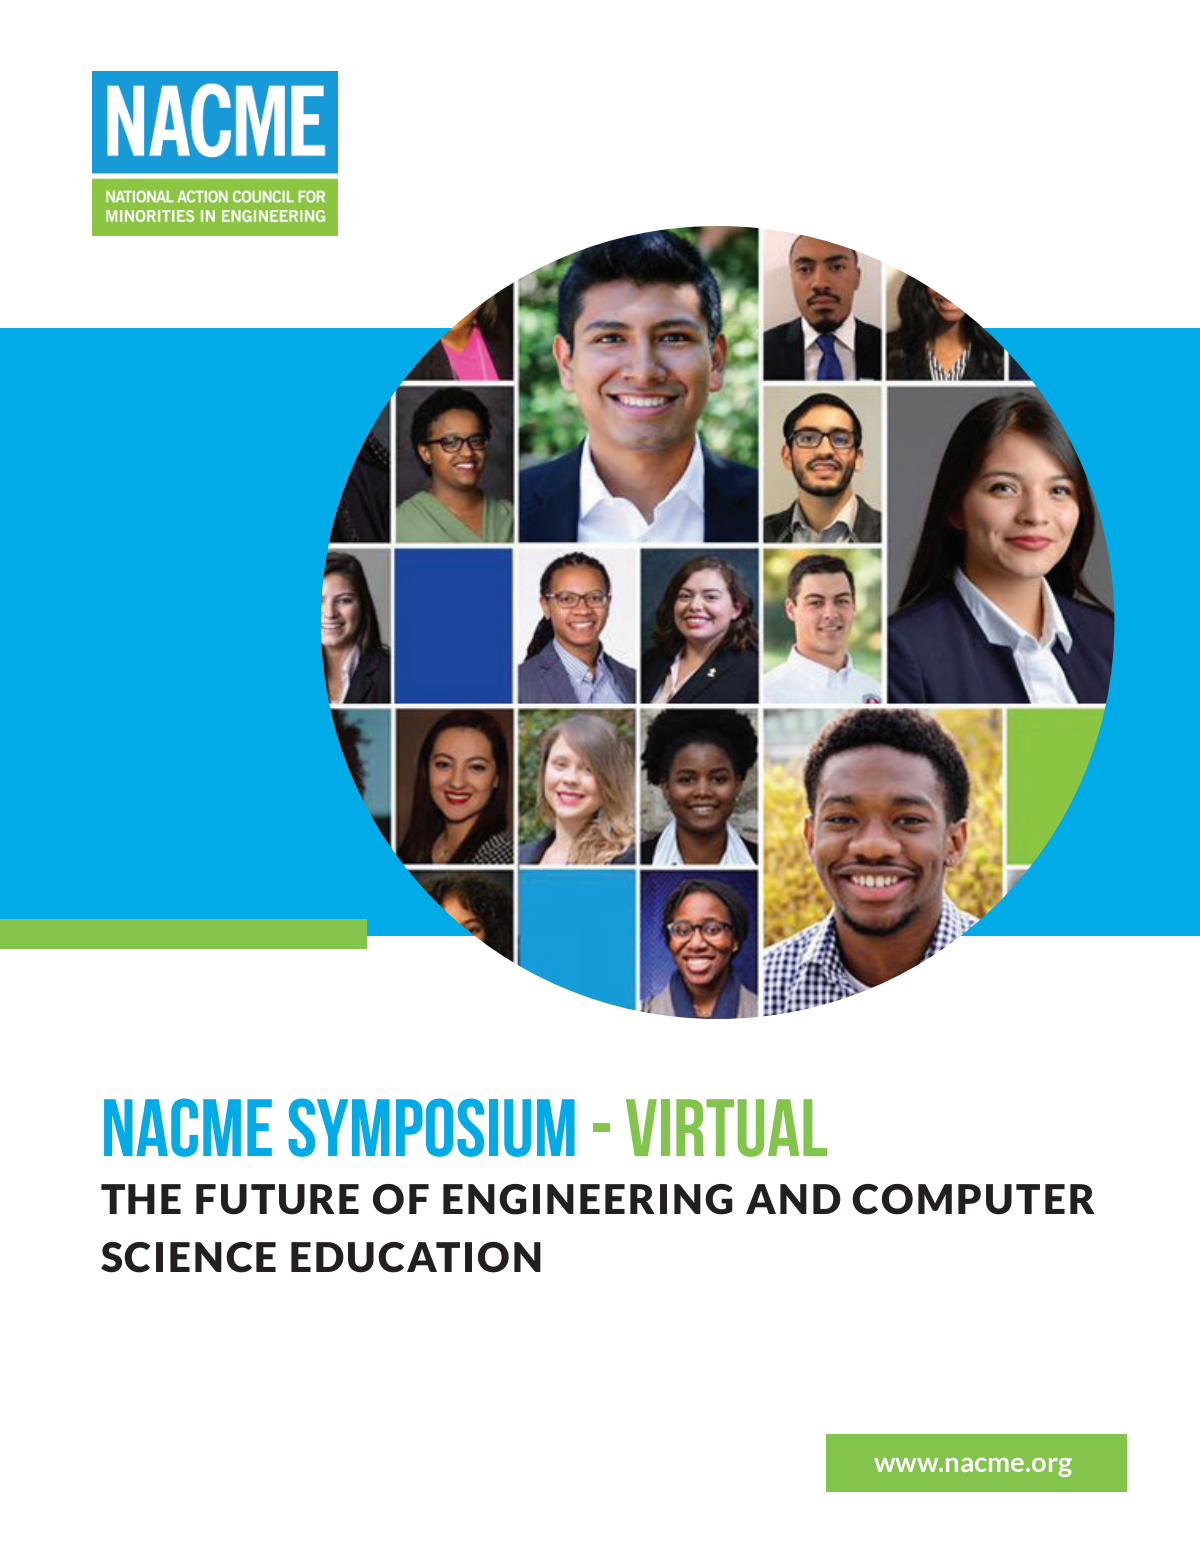 NACME Symposium- The Future of Engineering and Computer Science Education